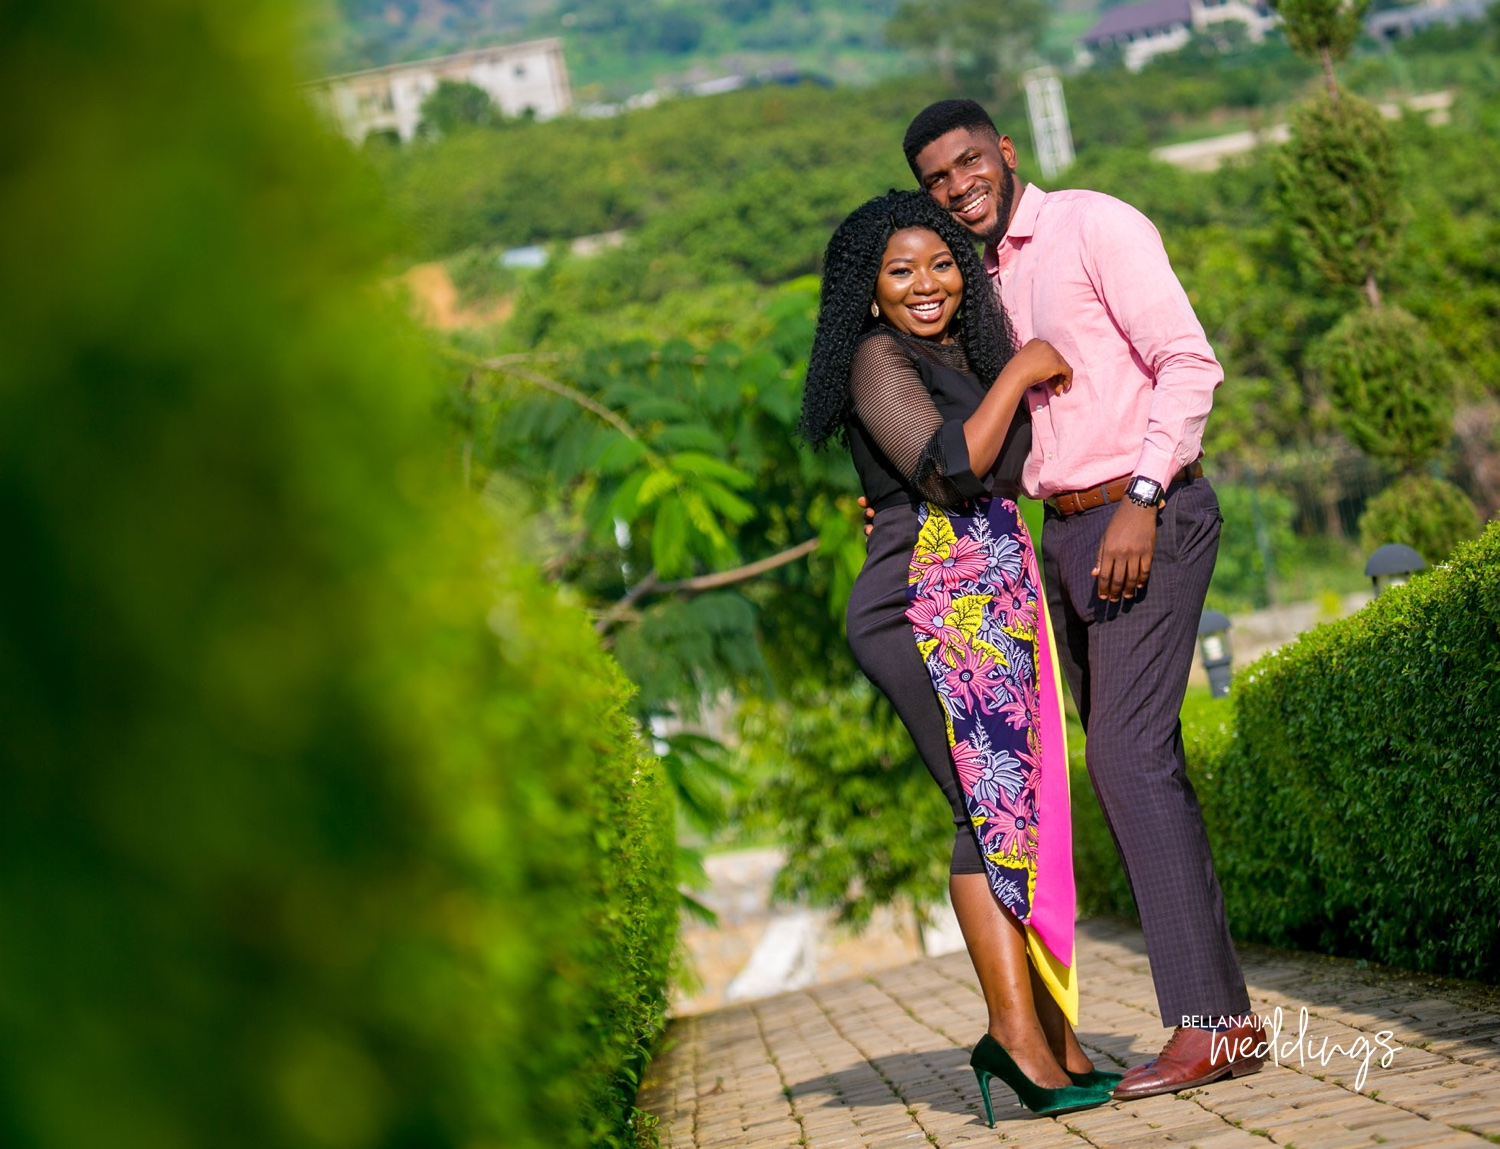 BBN Wonderland Proposal Couple Lizzy & Femi's Pre-Wedding Shoot + Love Story!